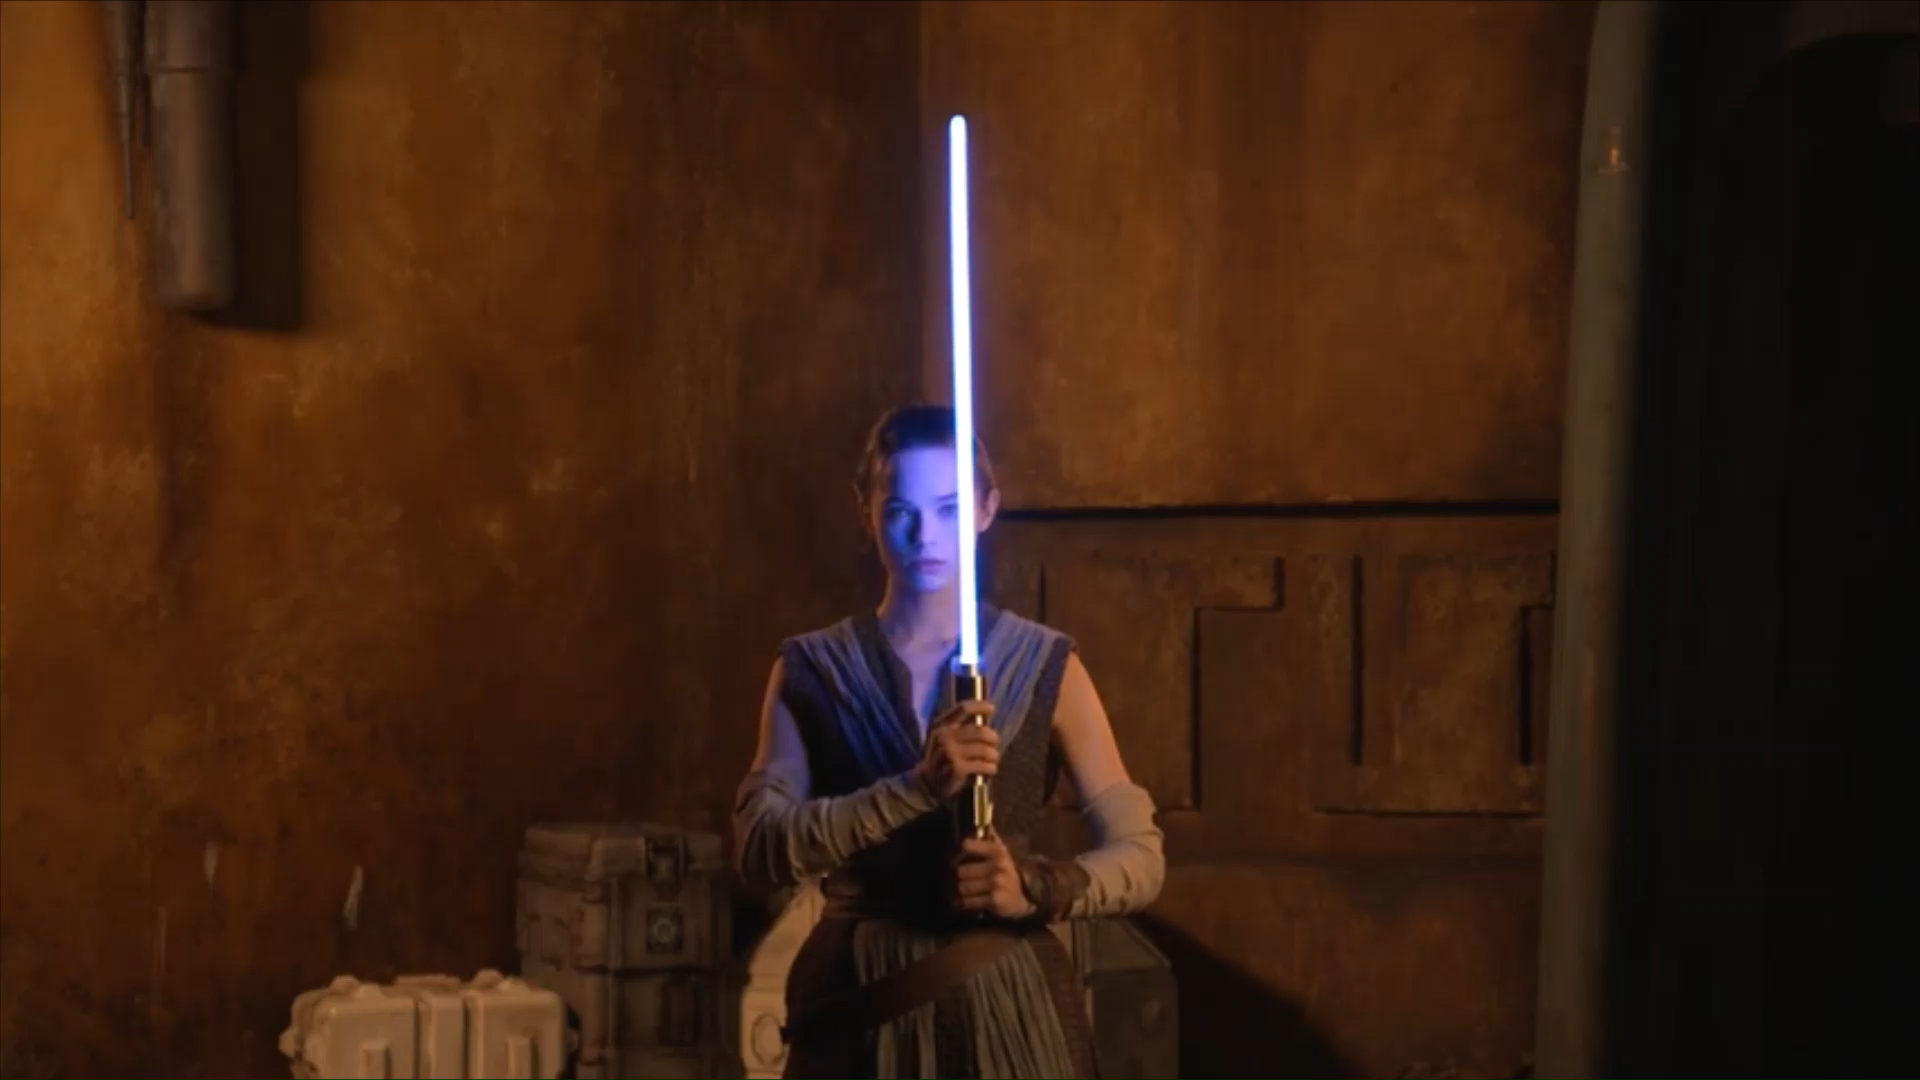 Disney announce 'realistic' lightsaber